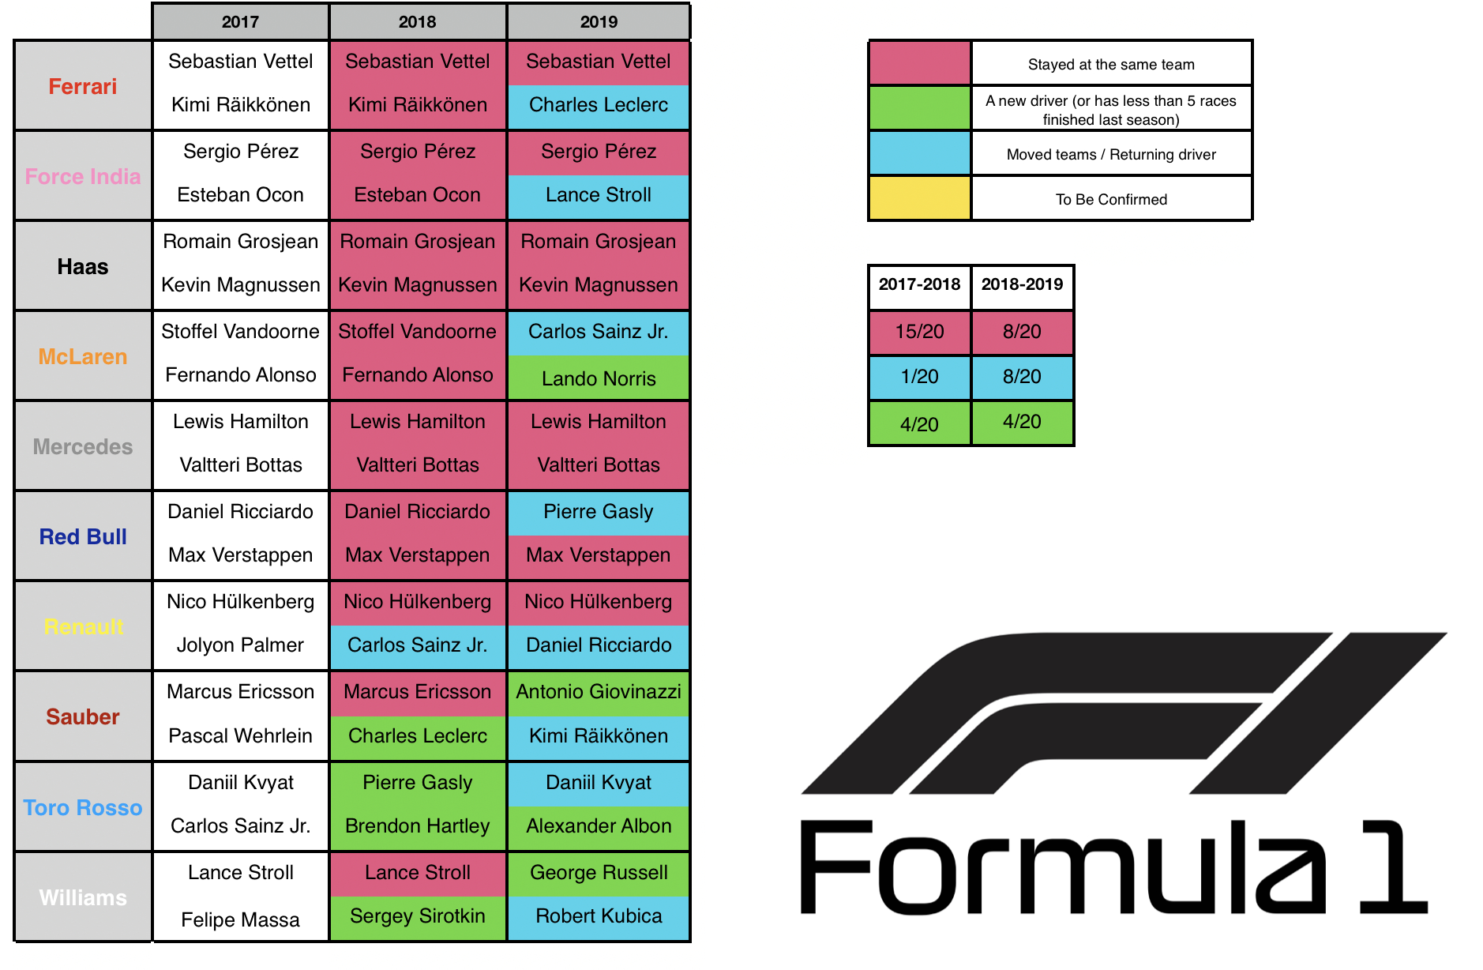 Martin Lewis Spreadsheet Inside The Final Version Of A Spreadsheet Comparing Driver Changes Between